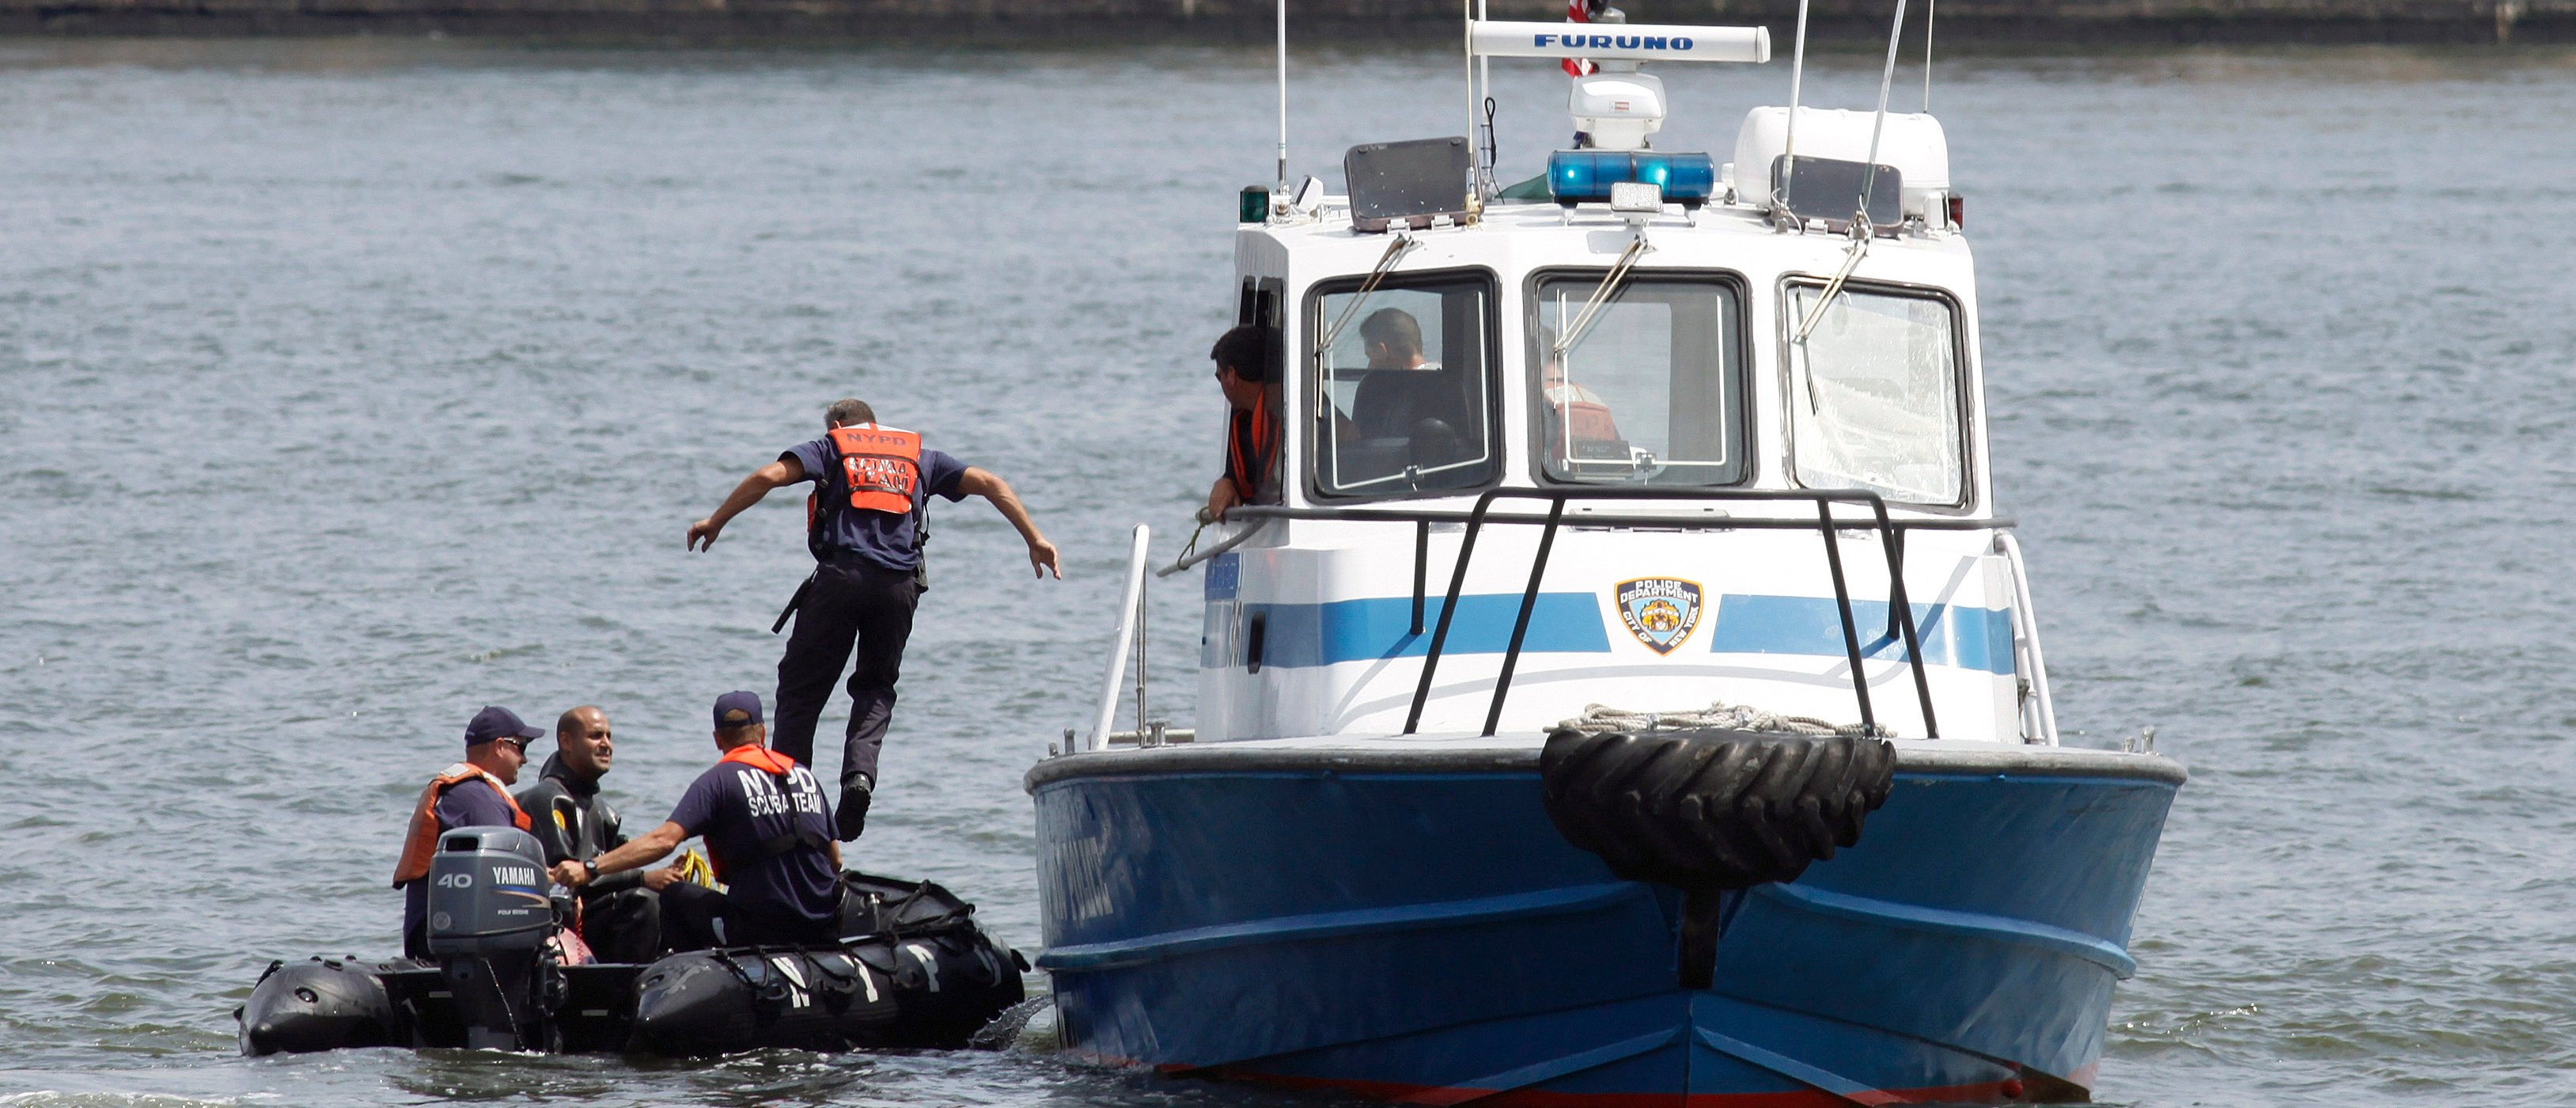 A NYPD scuba team is on site of a crash between a helicopter and an aircraft over the Hudson River, between New York and Hoboken, New Jersey, August 8, 2009. The tour helicopter collided with the small plane in midair and both crashed into the Hudson River near lower Manhattan, police reported on Saturday. REUTERS/Gary Hershorn